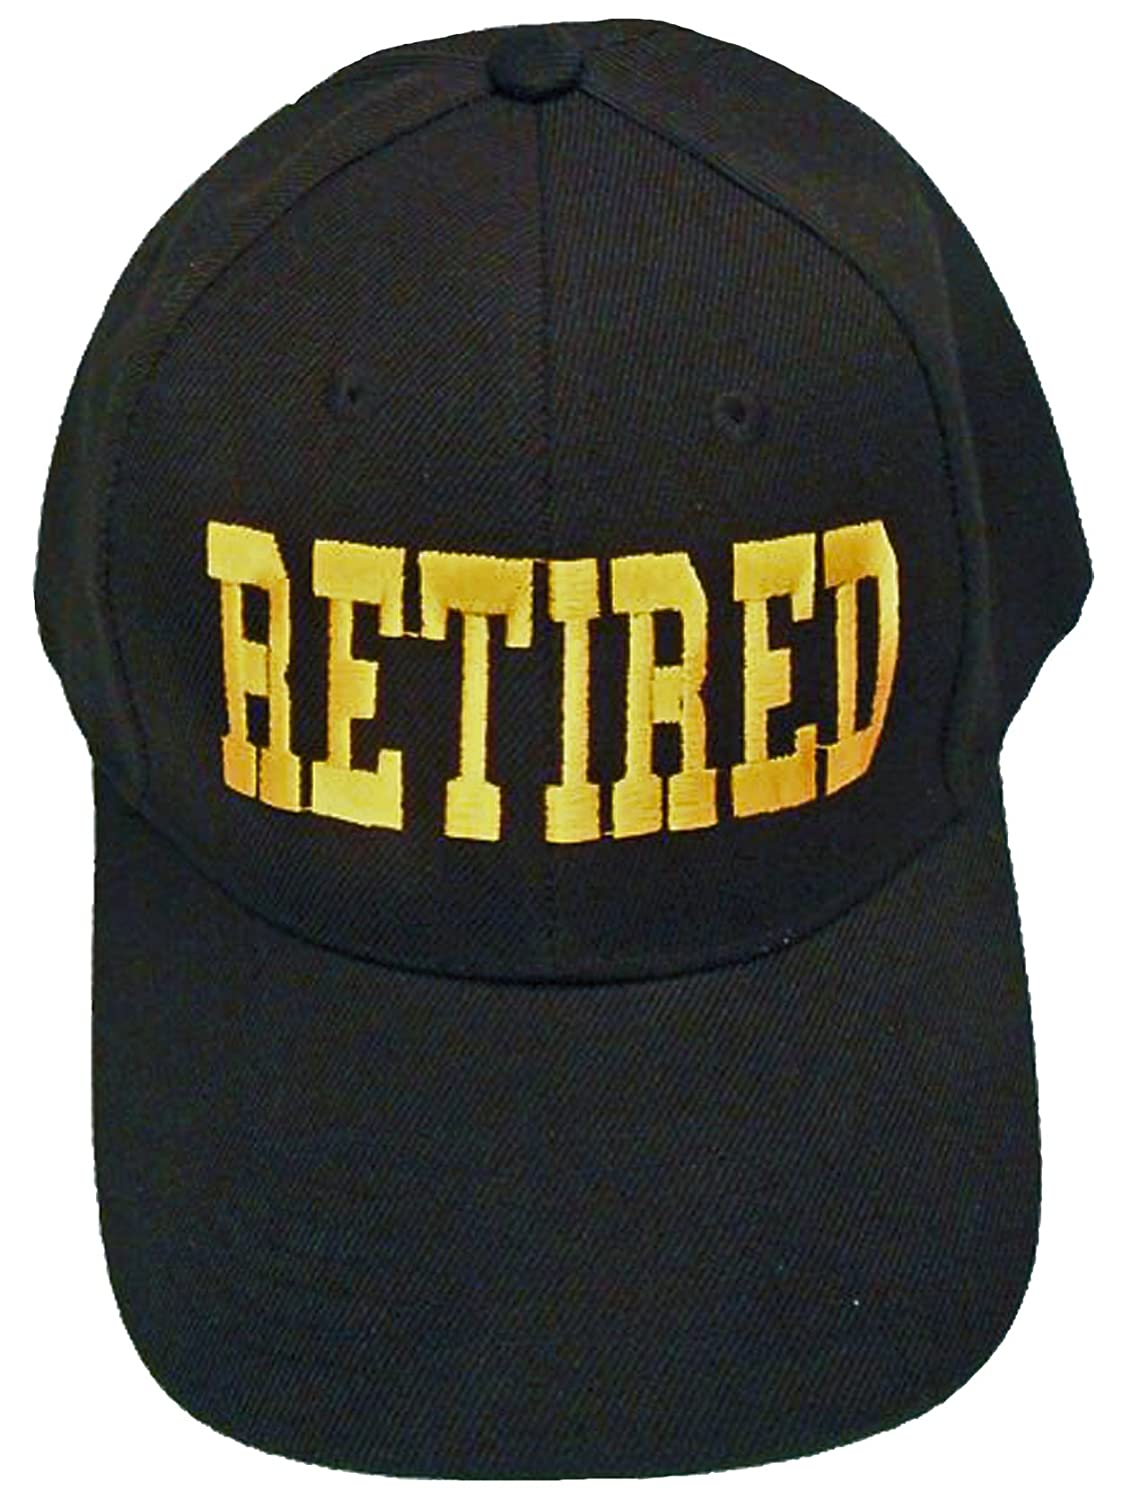 f47b7c291fc Buy caps and hats retired cap black hat bcah bumper sticker for retirement  party mens womens